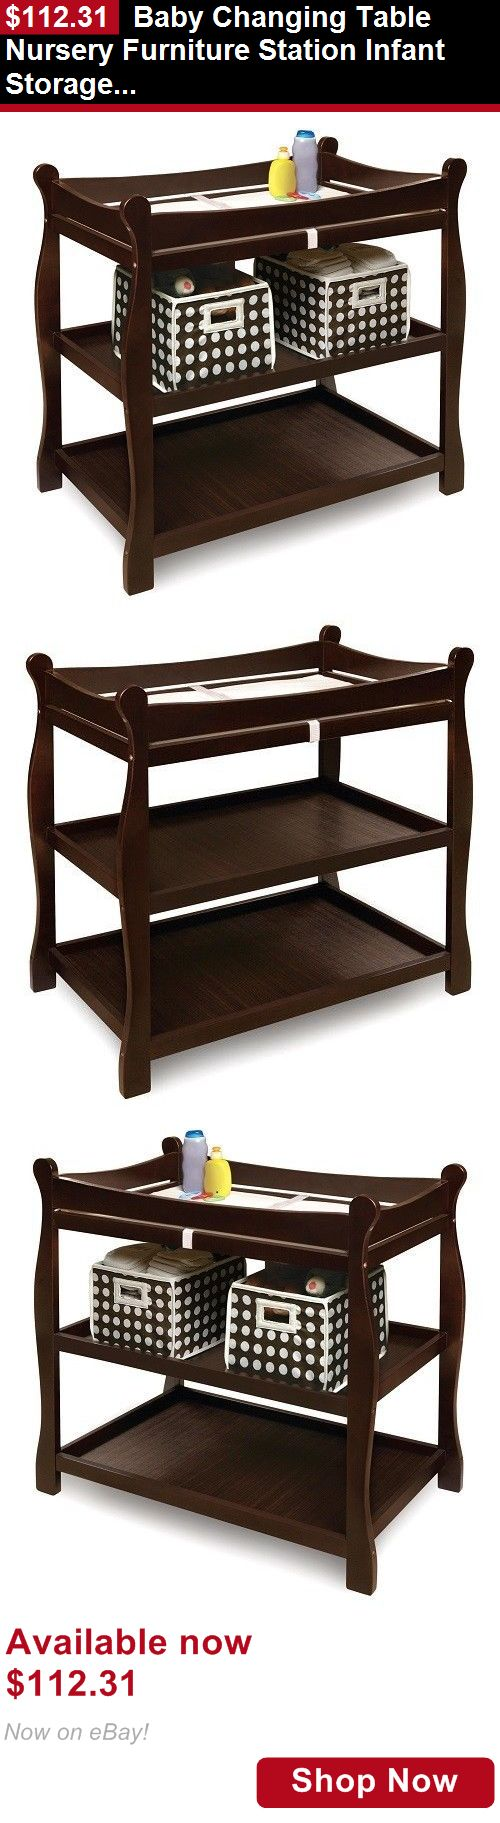 Changing Tables: Baby Changing Table Nursery Furniture Station Infant Storage Diaper Espresso Pad BUY IT NOW ONLY: $112.31